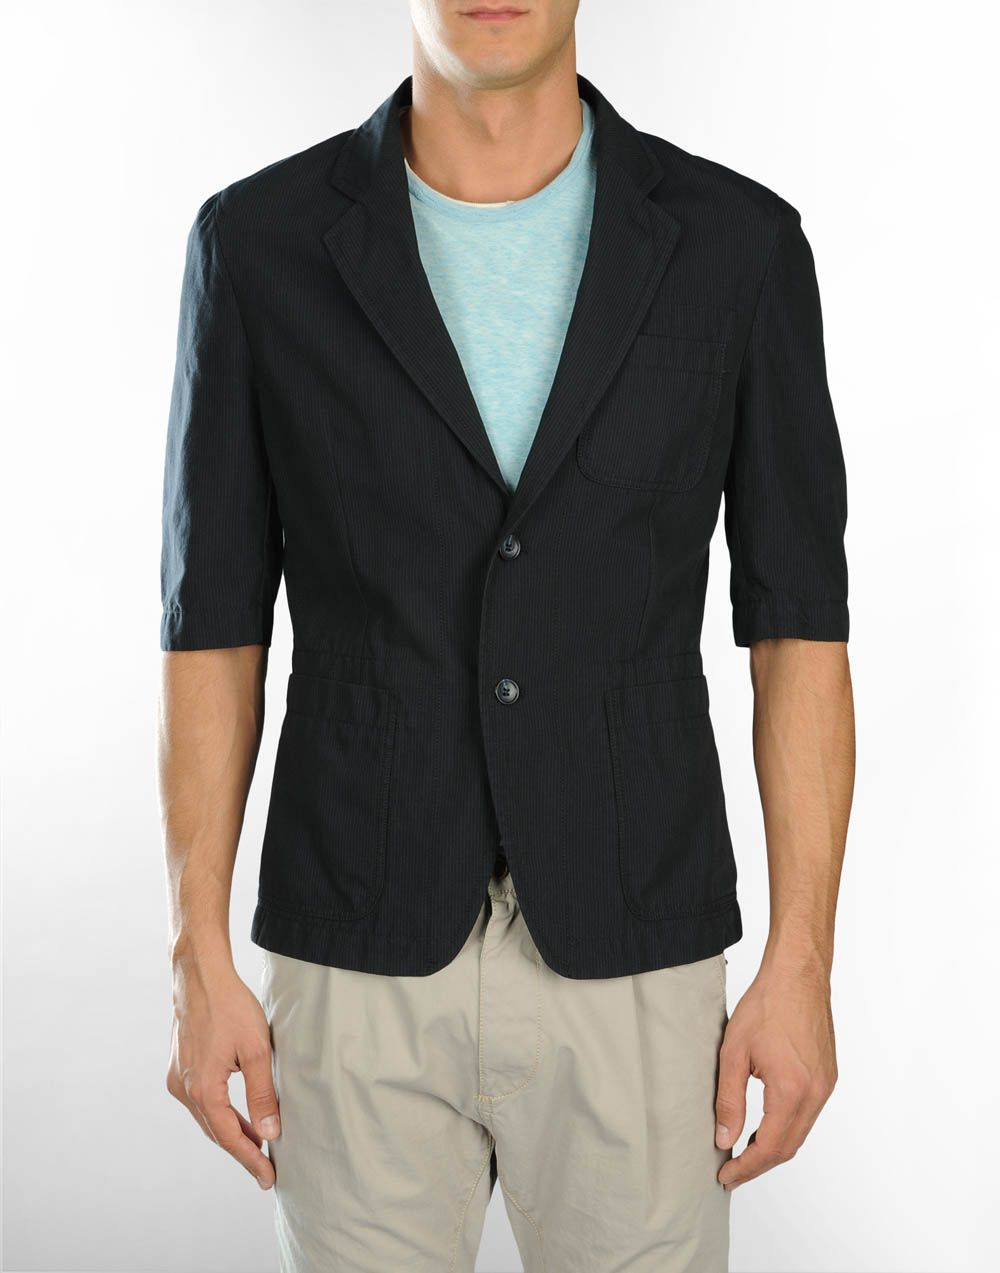 Short Sleeve Mens Blazer